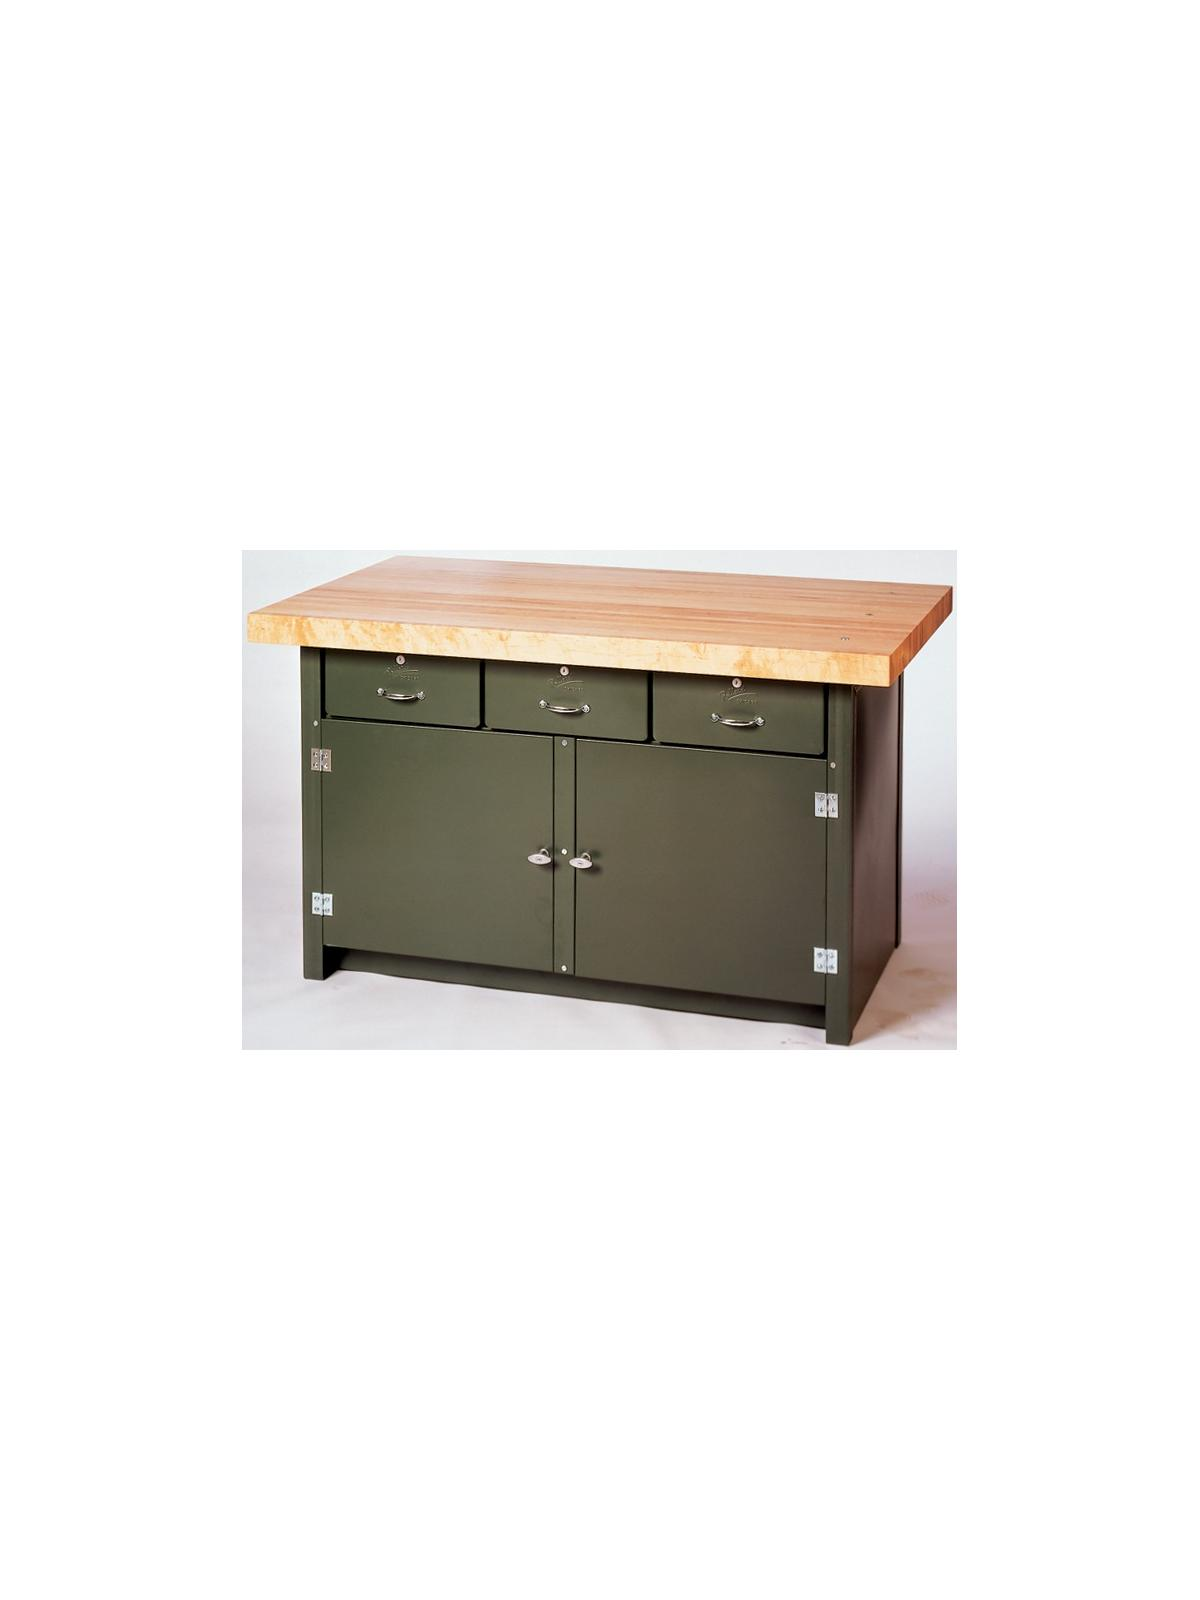 Three Drawer Cabinet Work Bench At Nationwide Industrial